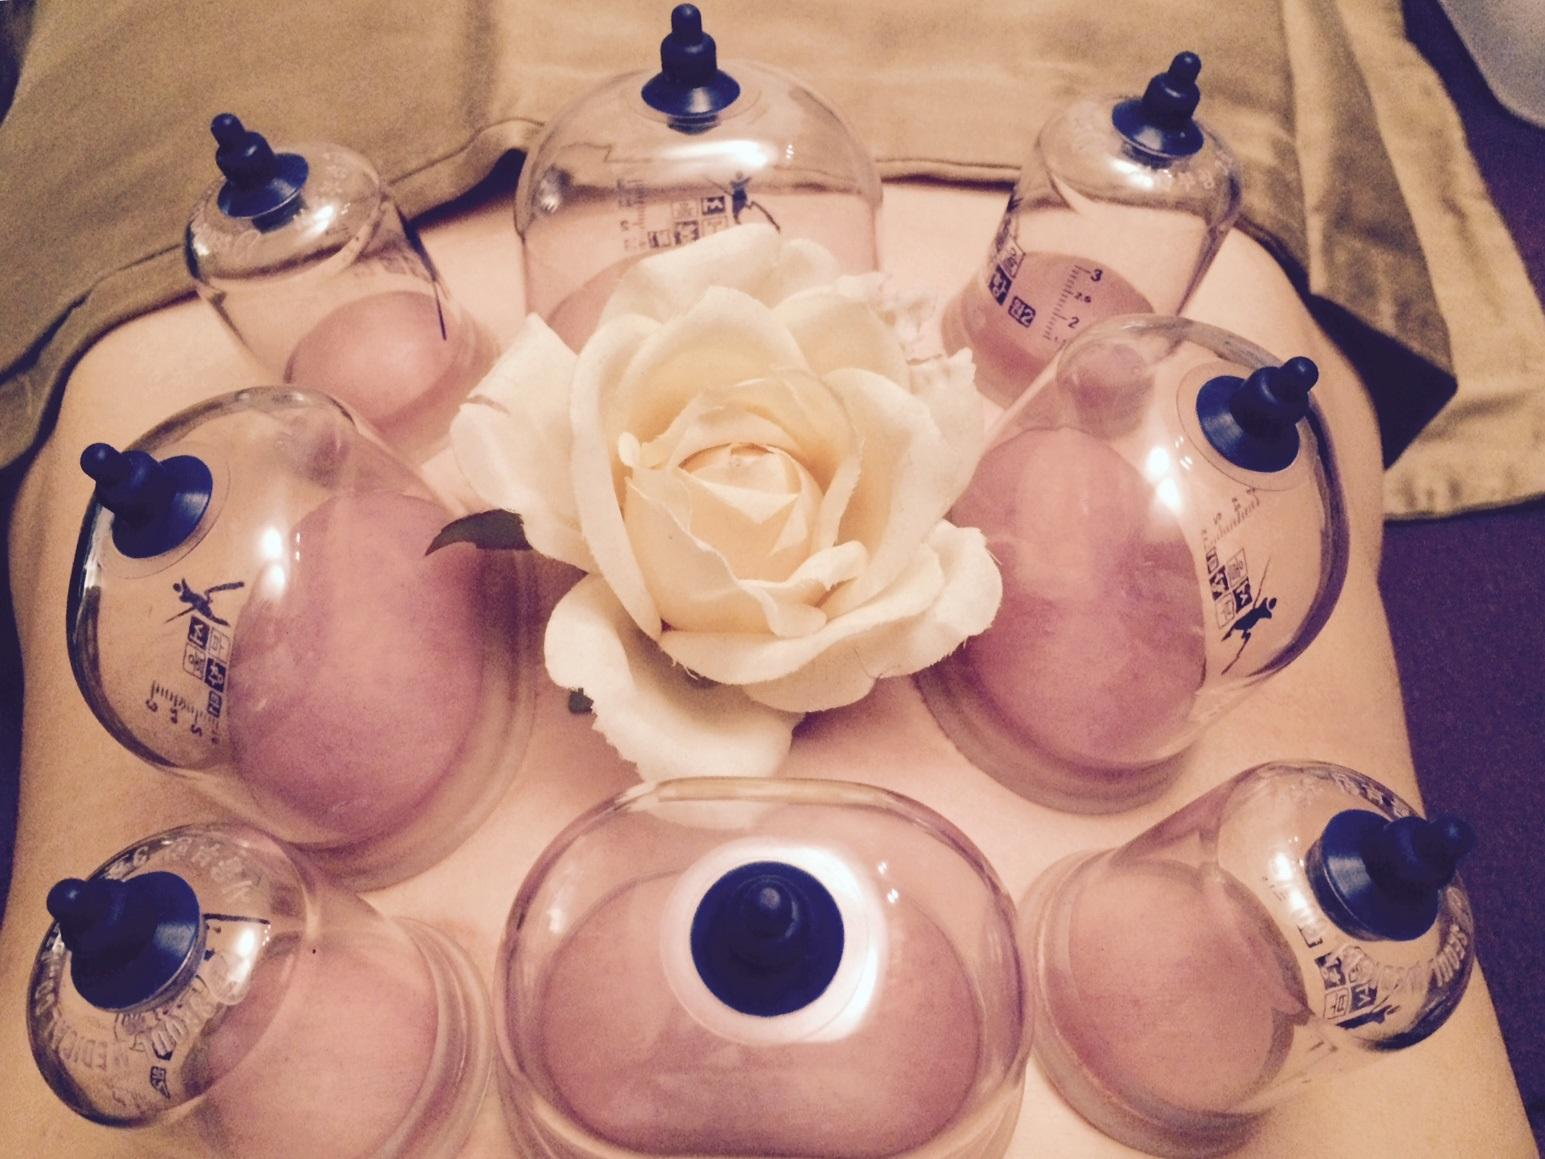 45-Minute Private Acupuncture Treatment with Cupping and More